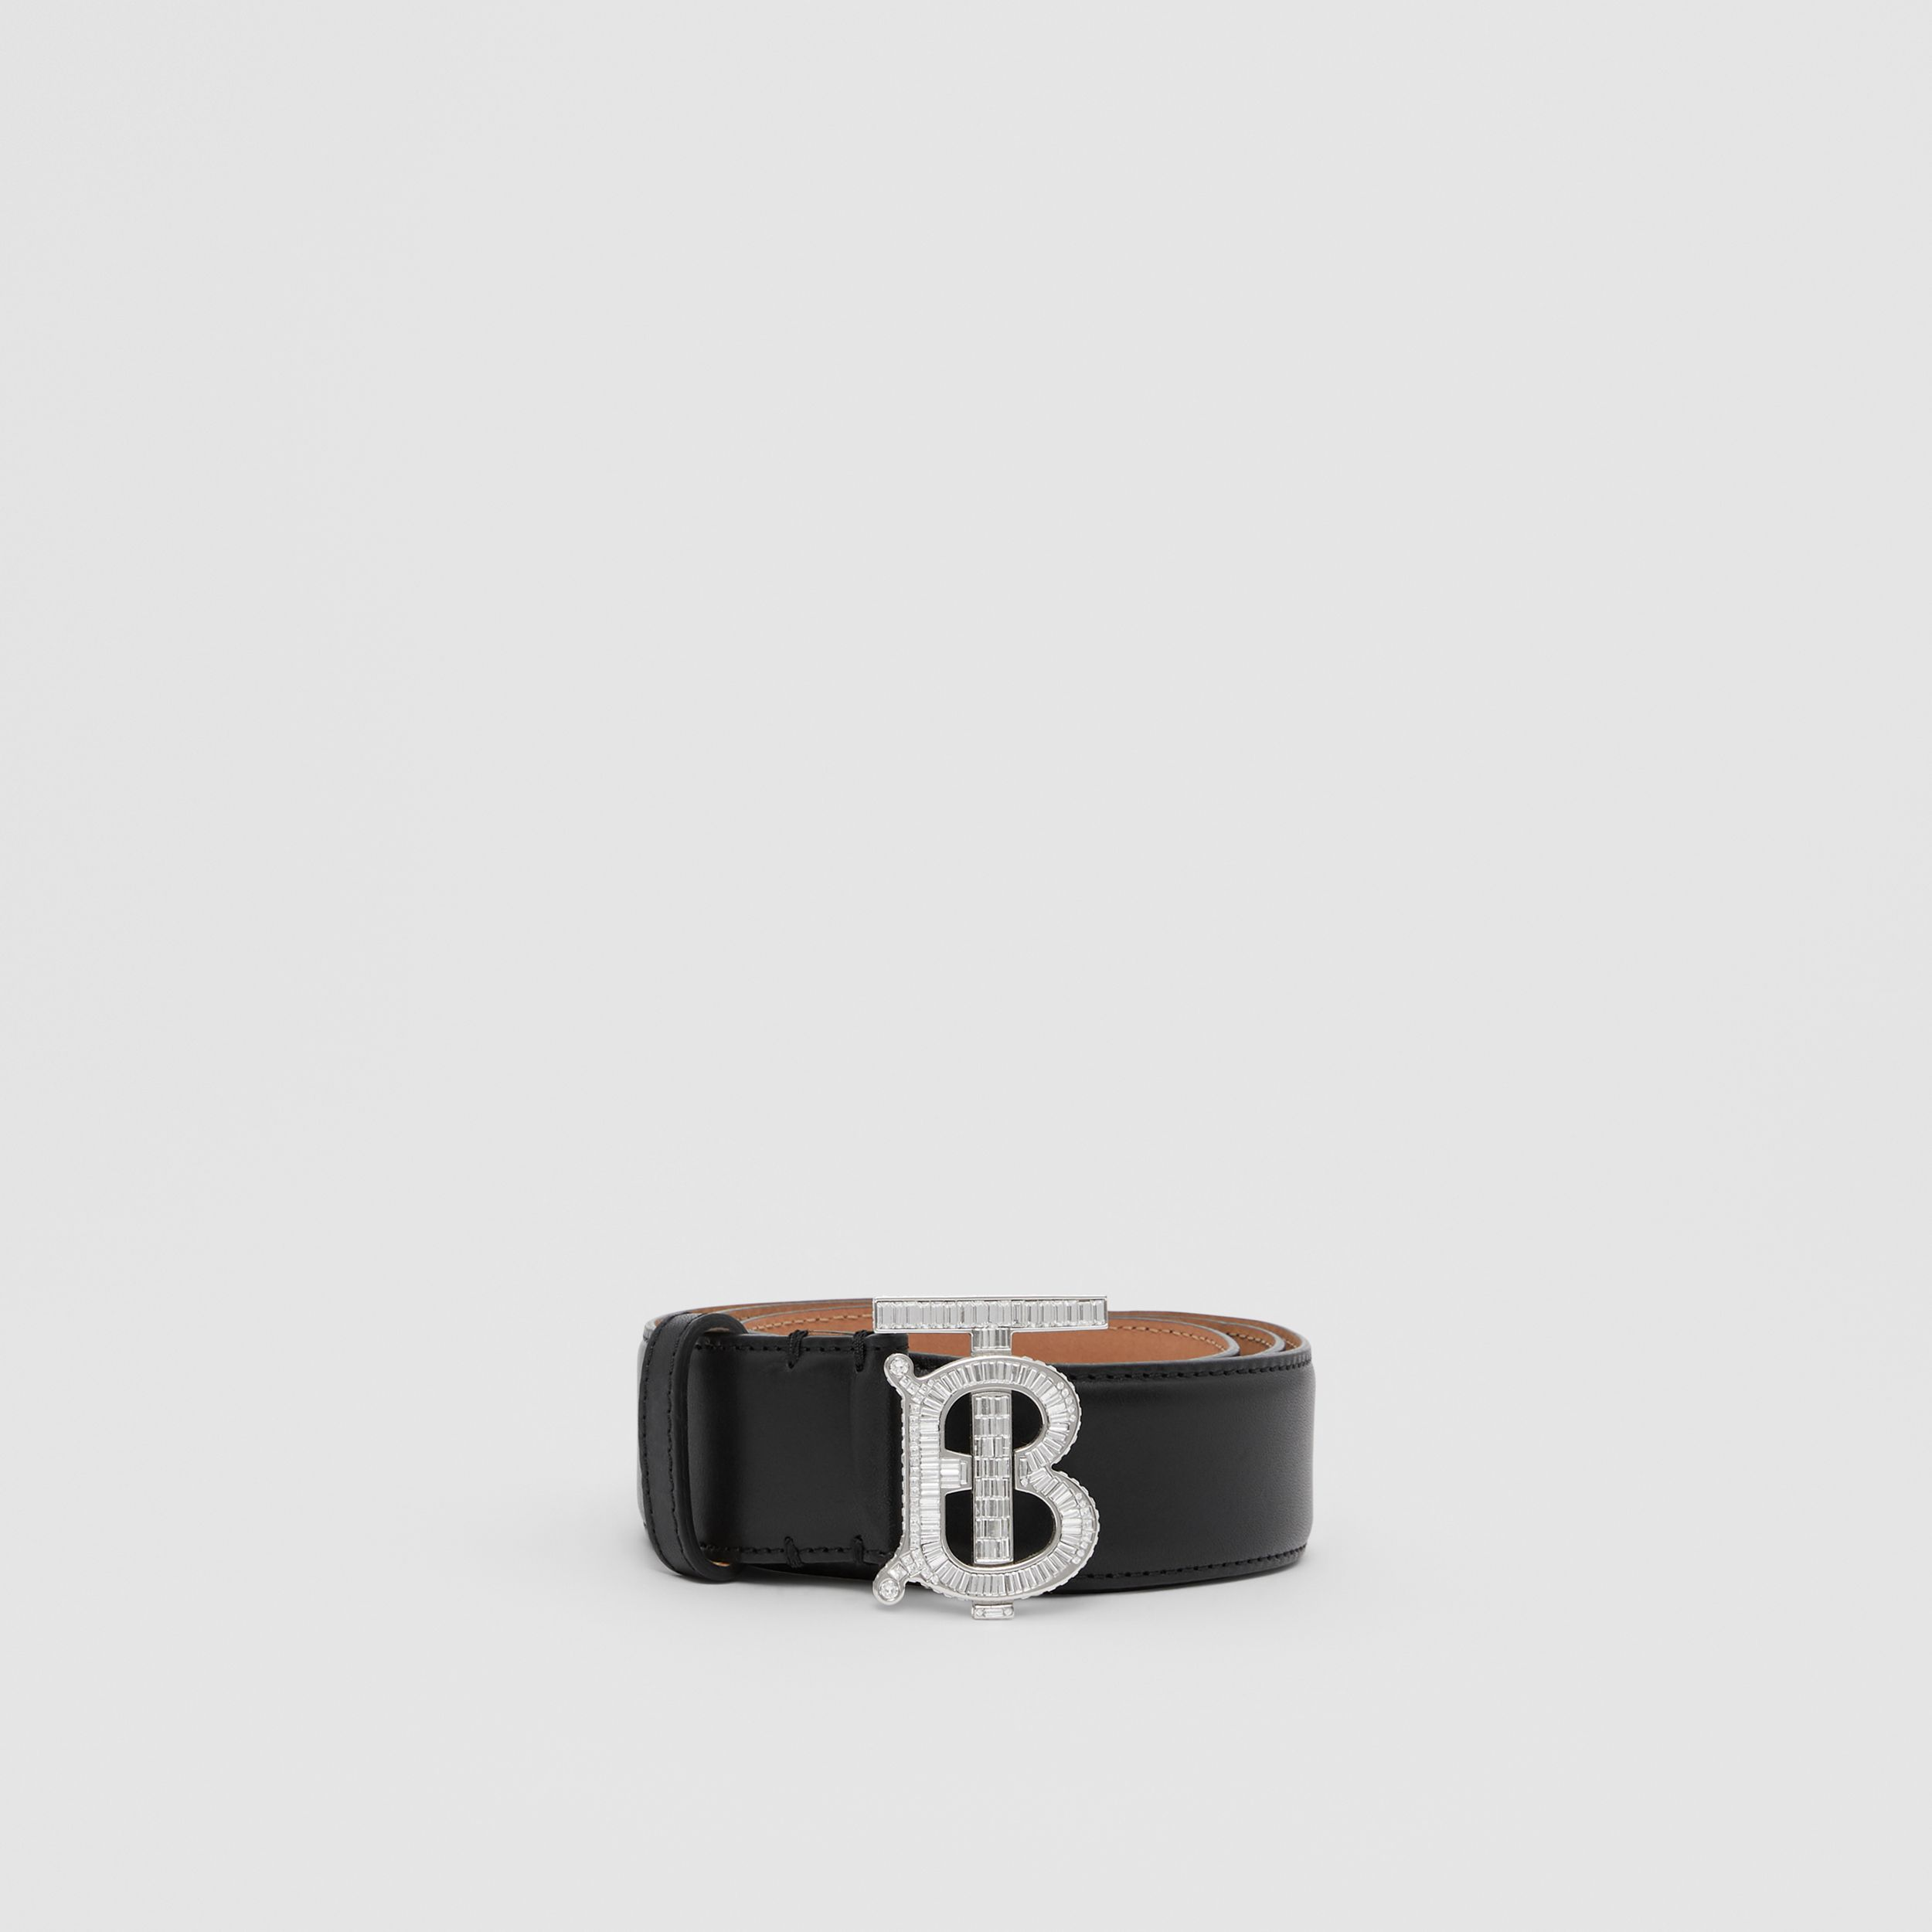 Crystal Monogram Motif Leather Belt in Black/palladium - Women | Burberry Canada - 4